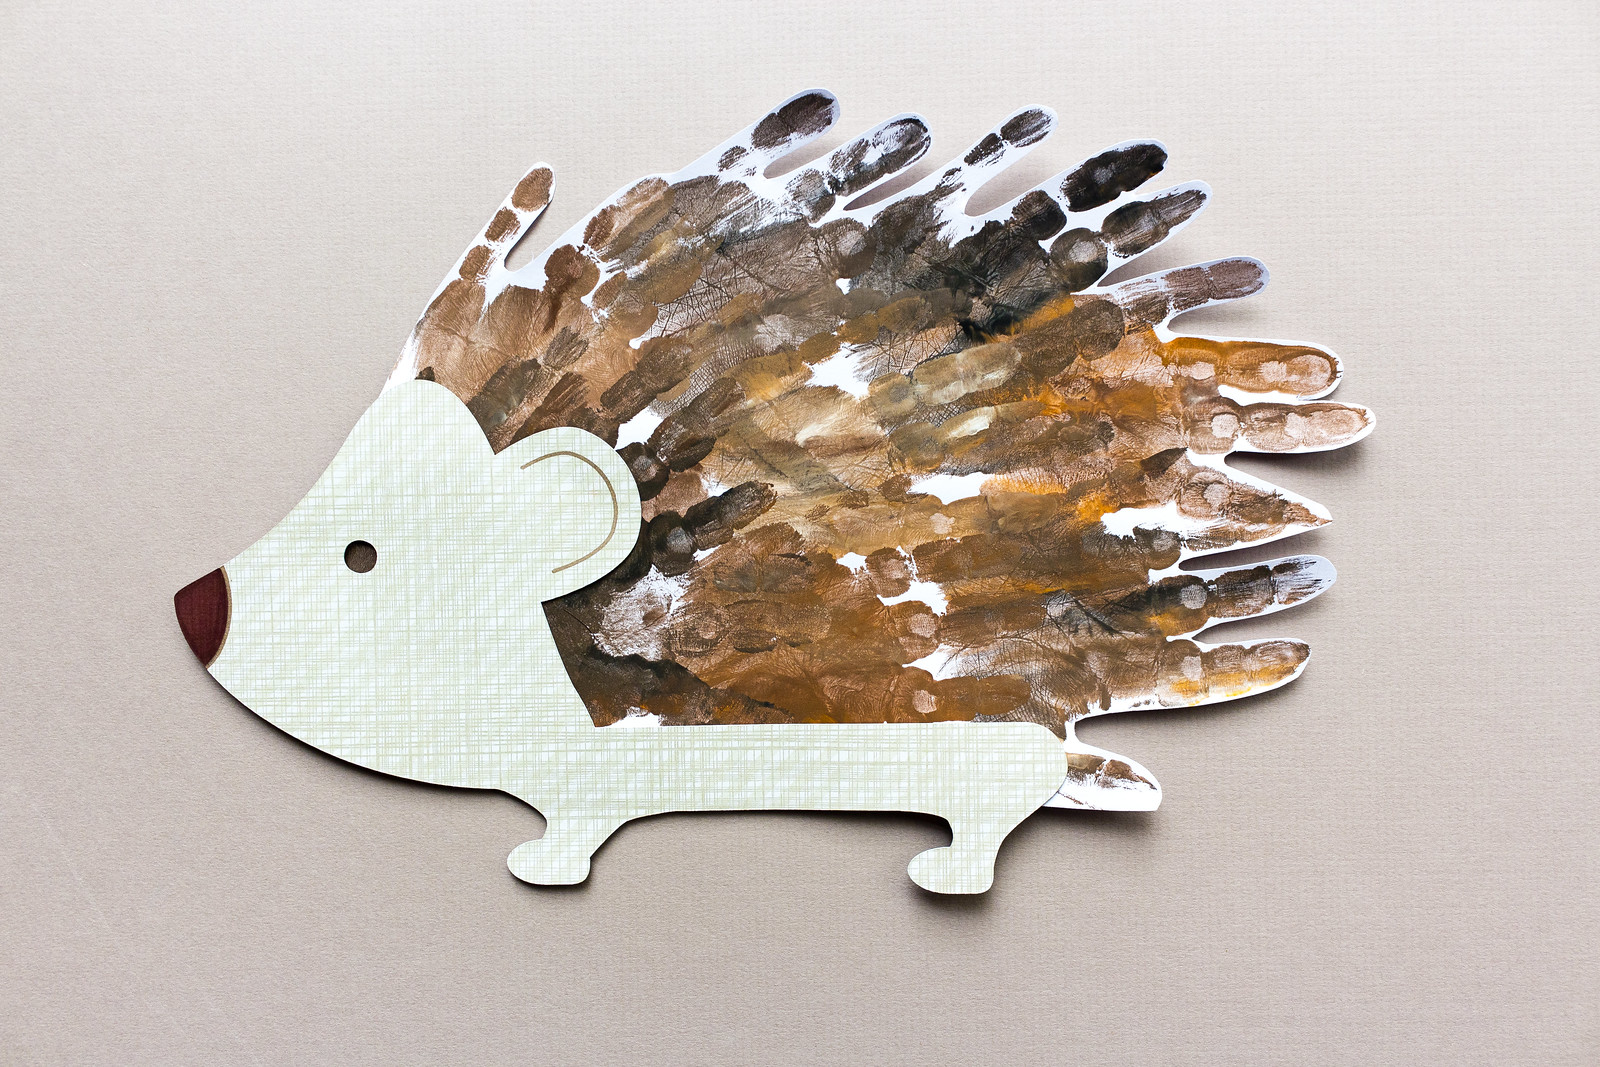 Toddler handprint hedgehog with free downloadable PDF and SVG files for cutting by hand or machine